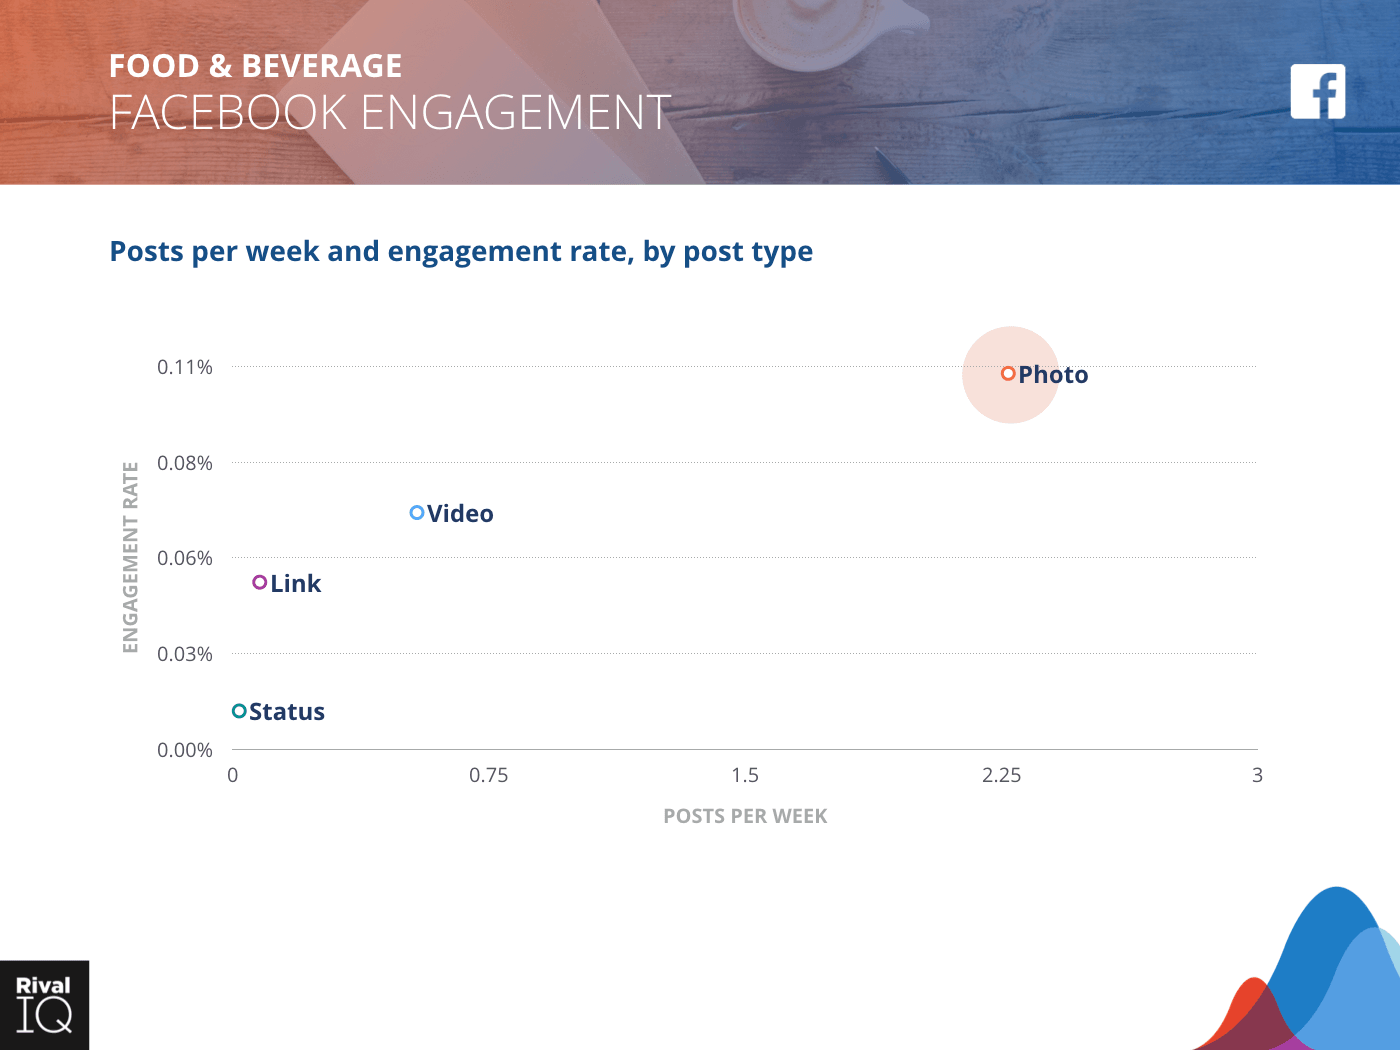 Food & Beverage Industry: scatter graph, average post per week by type and engagement rate on Facebook